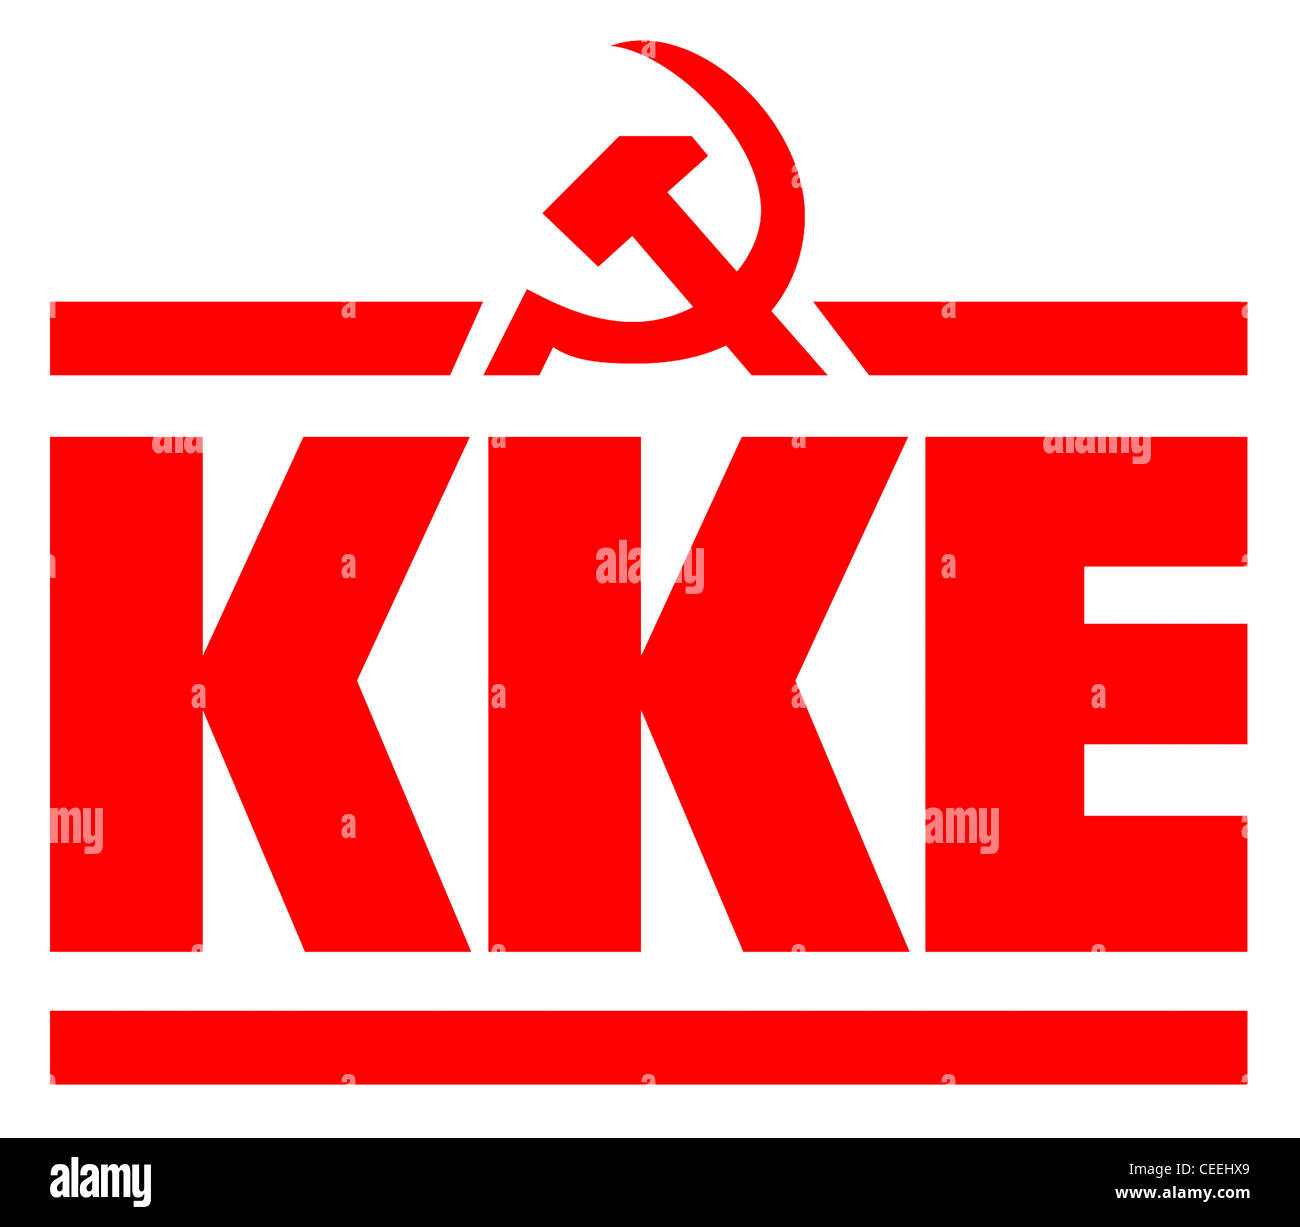 Logo of the Communist party of Greece KKE. - Stock Image